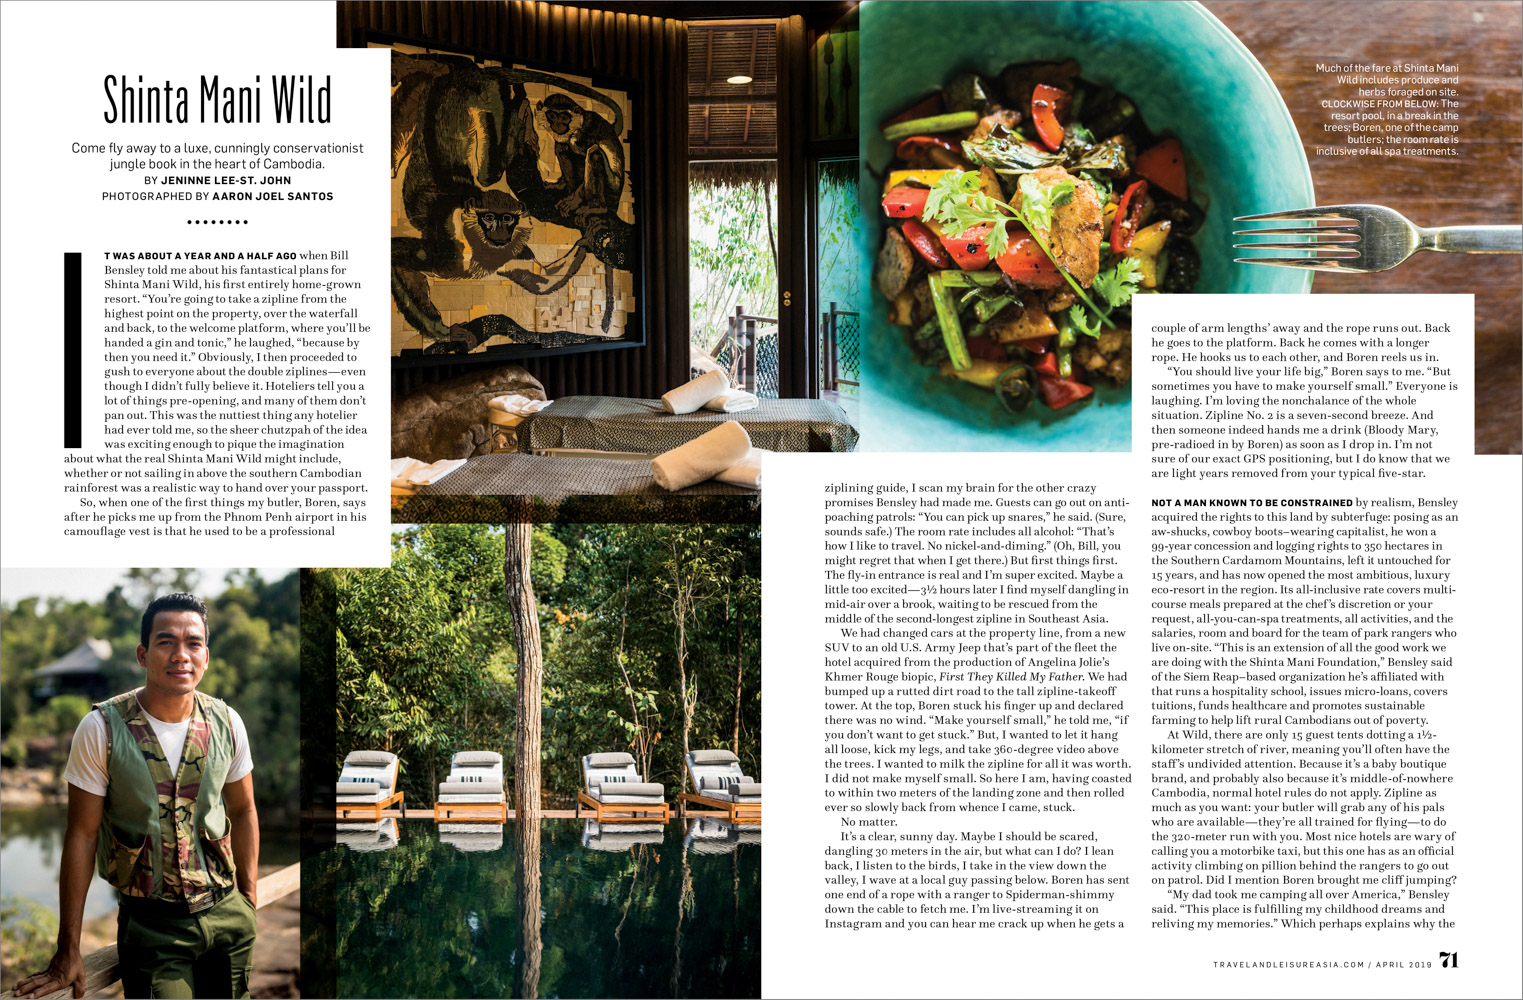 A feature on the Shinta Mani Wild resort in Cambodia.